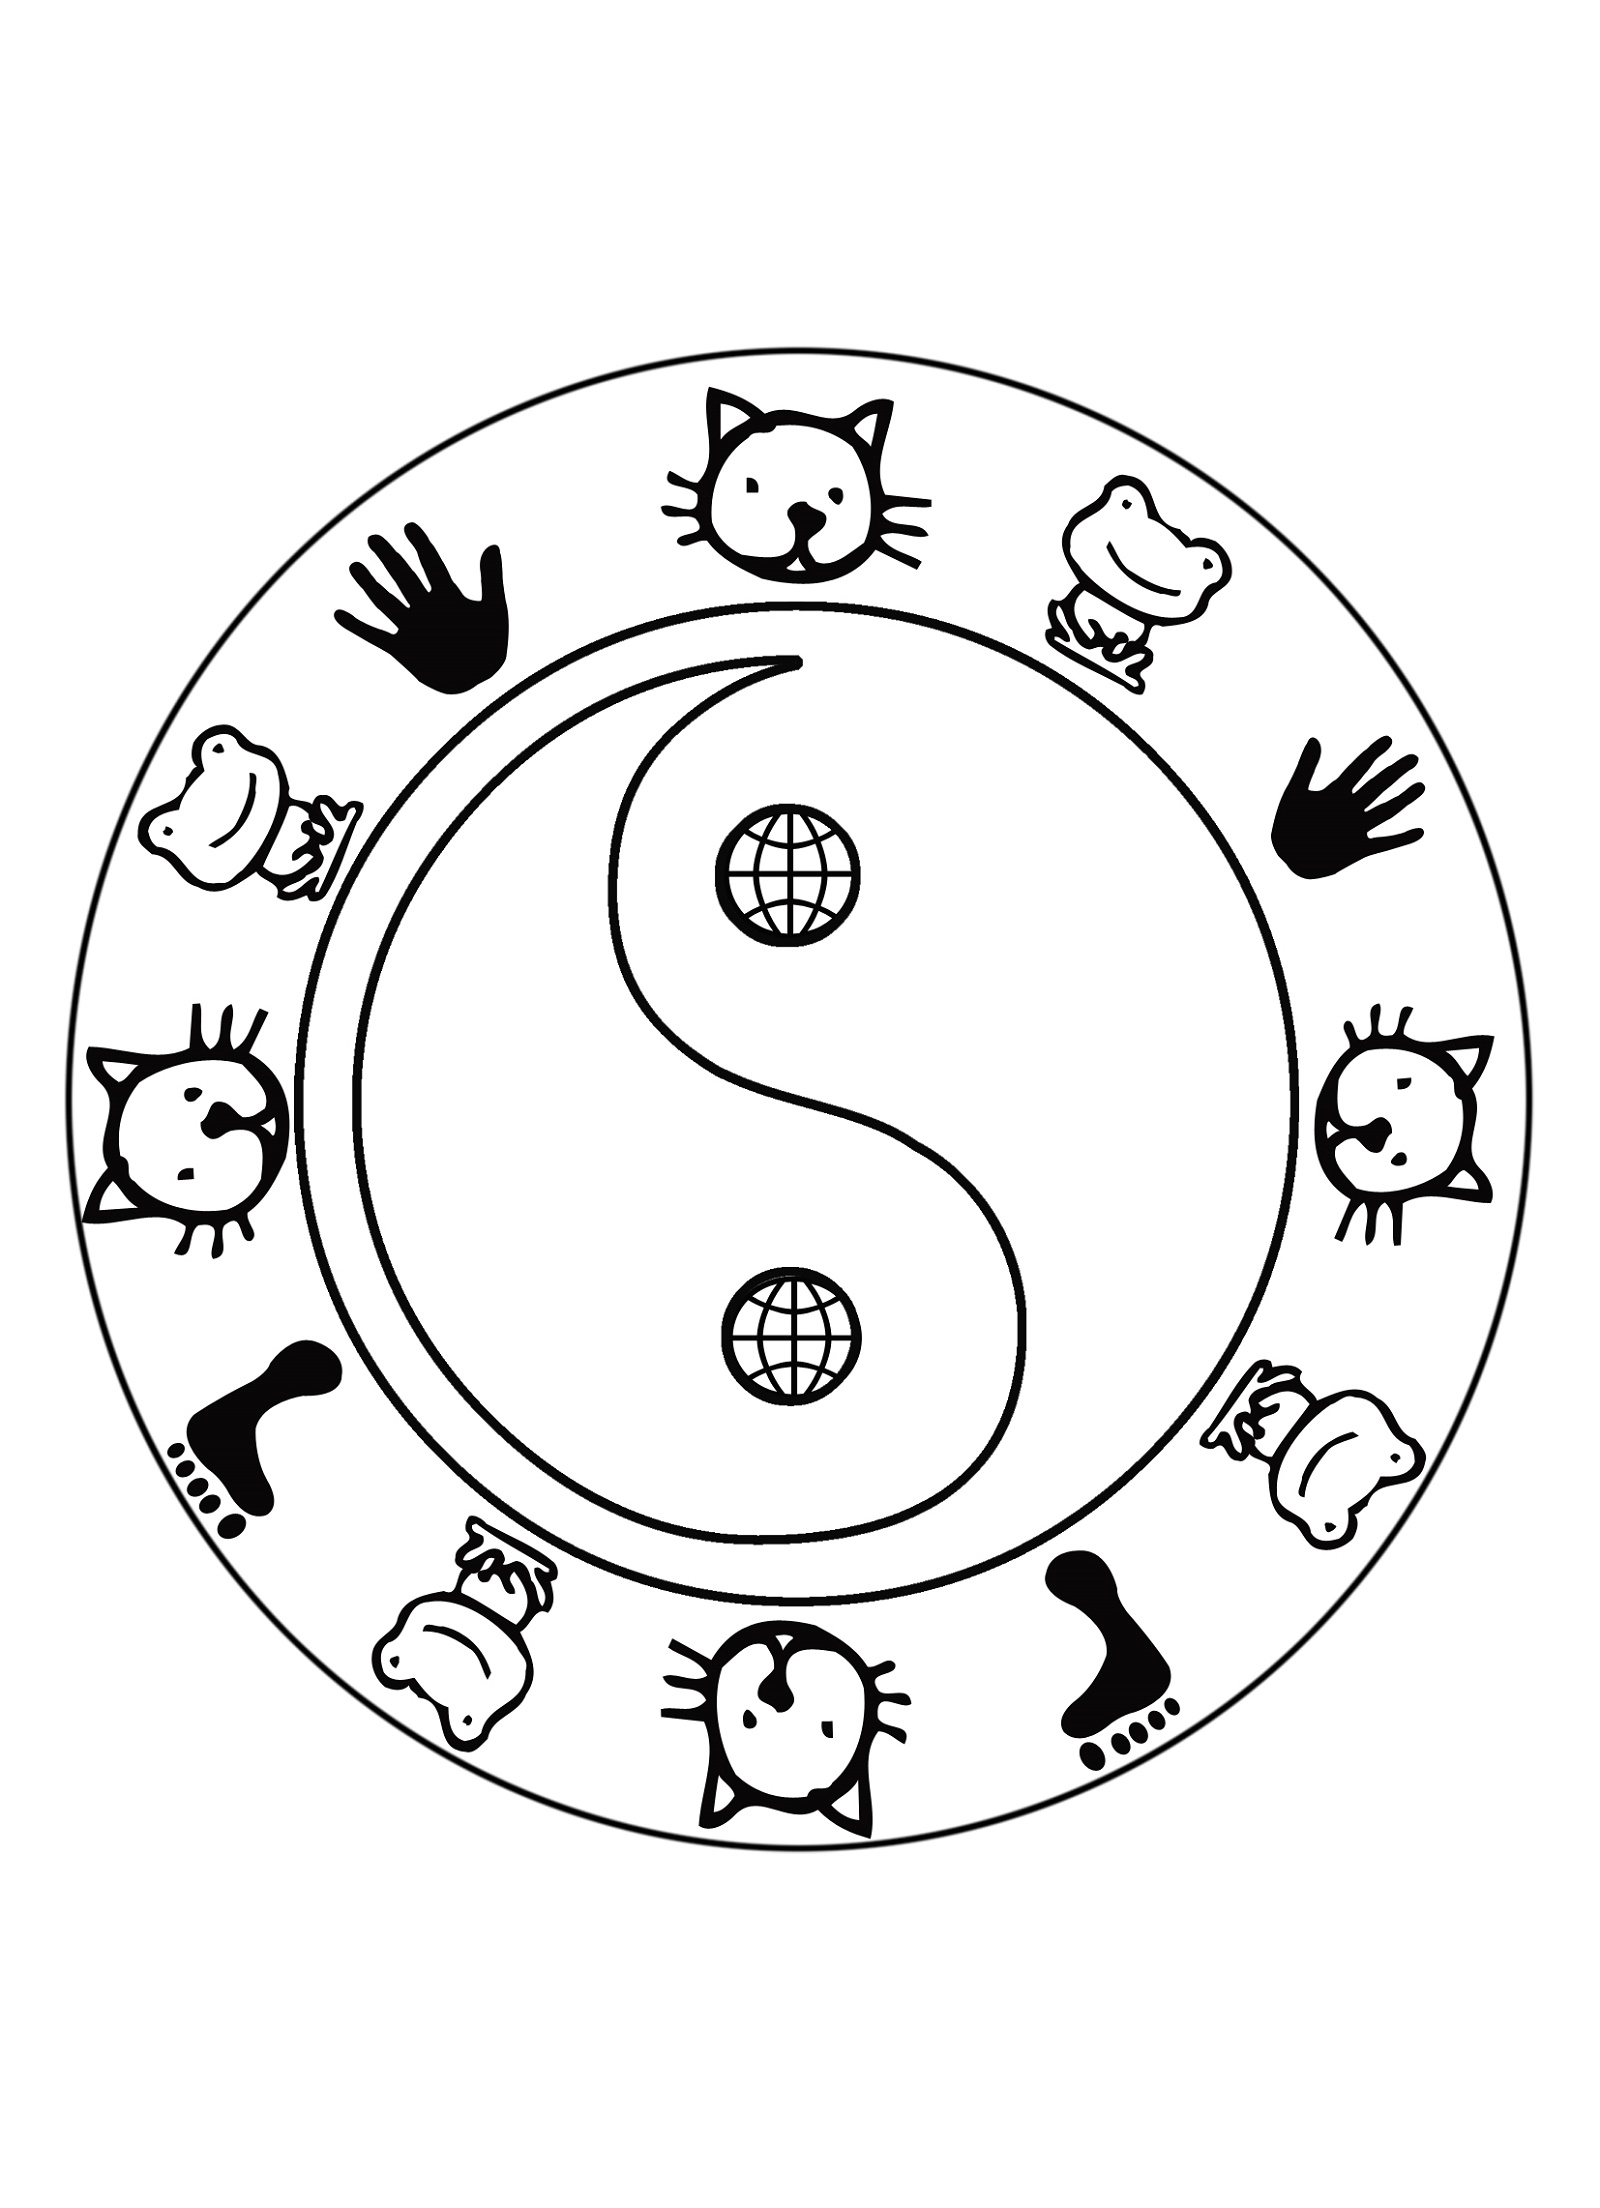 Yin Yang Coloring Pages For Kids